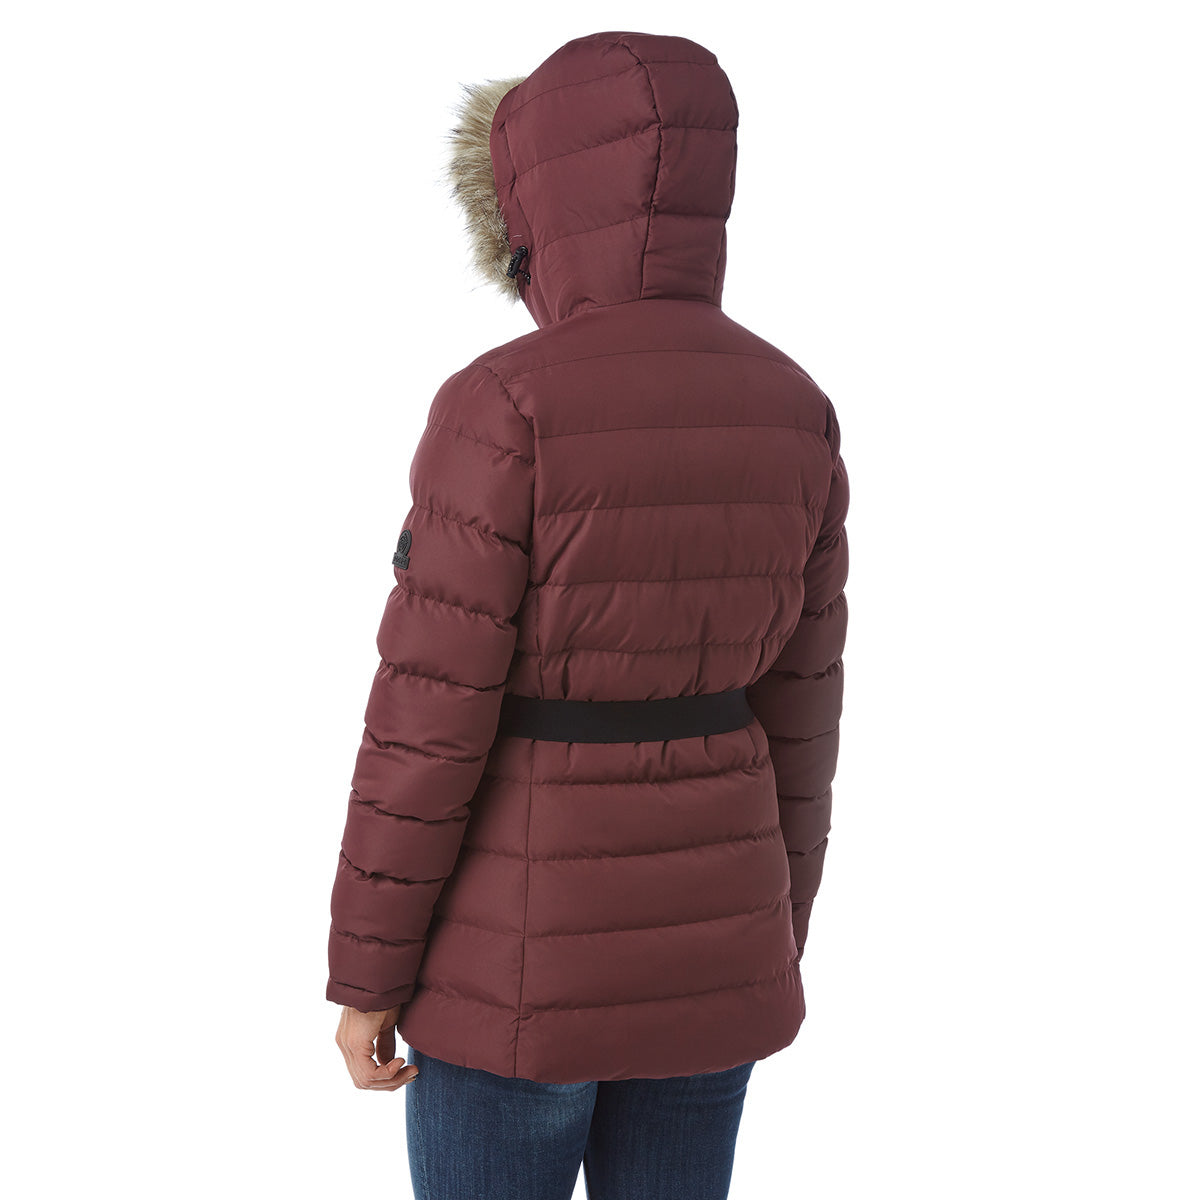 Storey Womens Long Insulated Jacket - Deep Port image 4